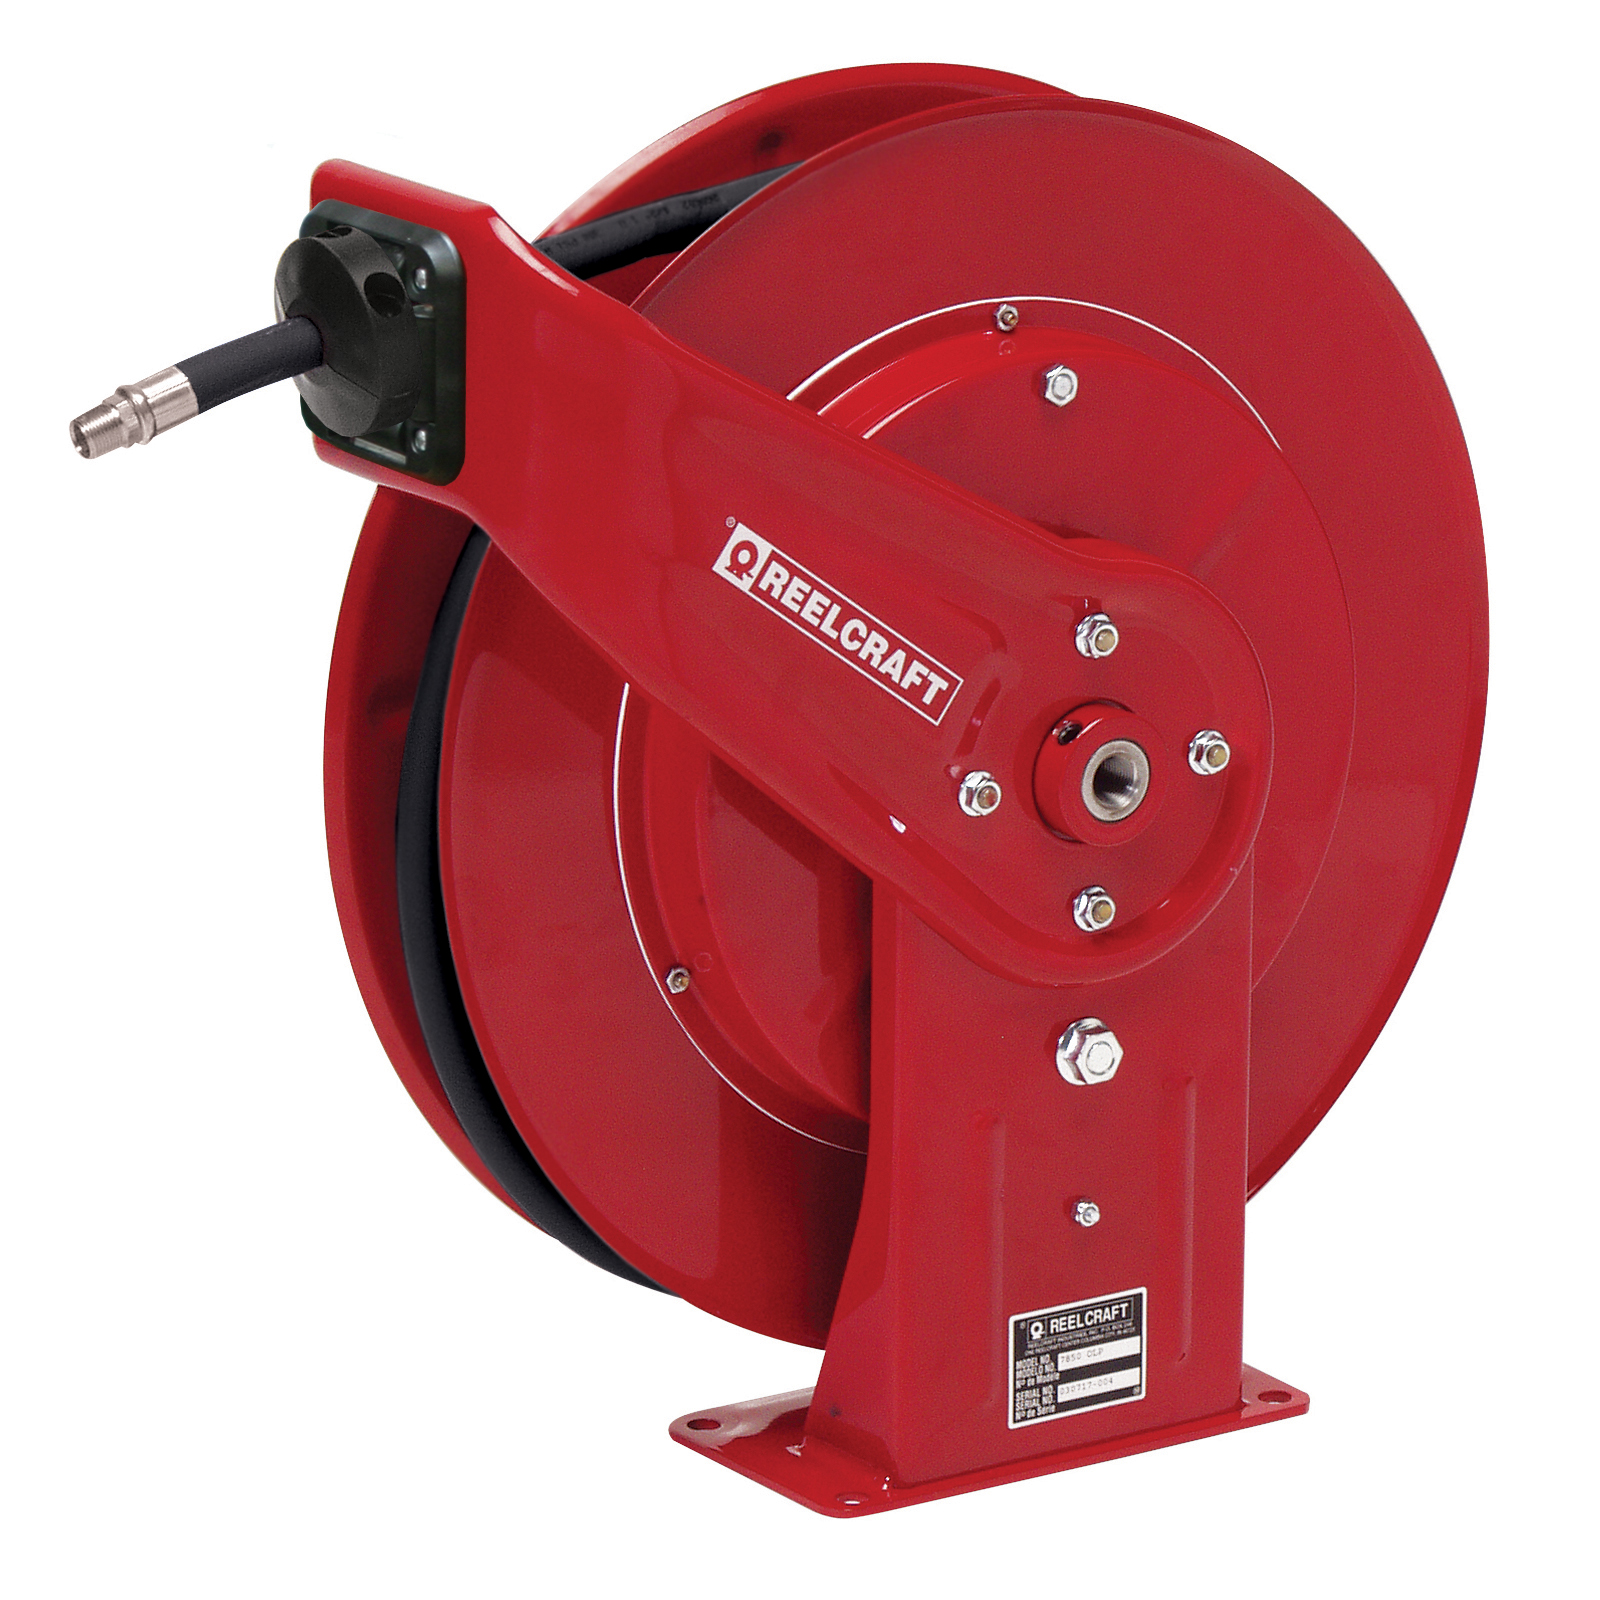 Reelcraft® 7650 OLP 7000 Heavy Duty Low Pressure Hose Reel With Hose, 3/8 in ID x 3/5 in OD x 50 ft L Hose, 300 psi Pressure, 19-3/4 in Dia x 3-7/8 in W Reel, Domestic